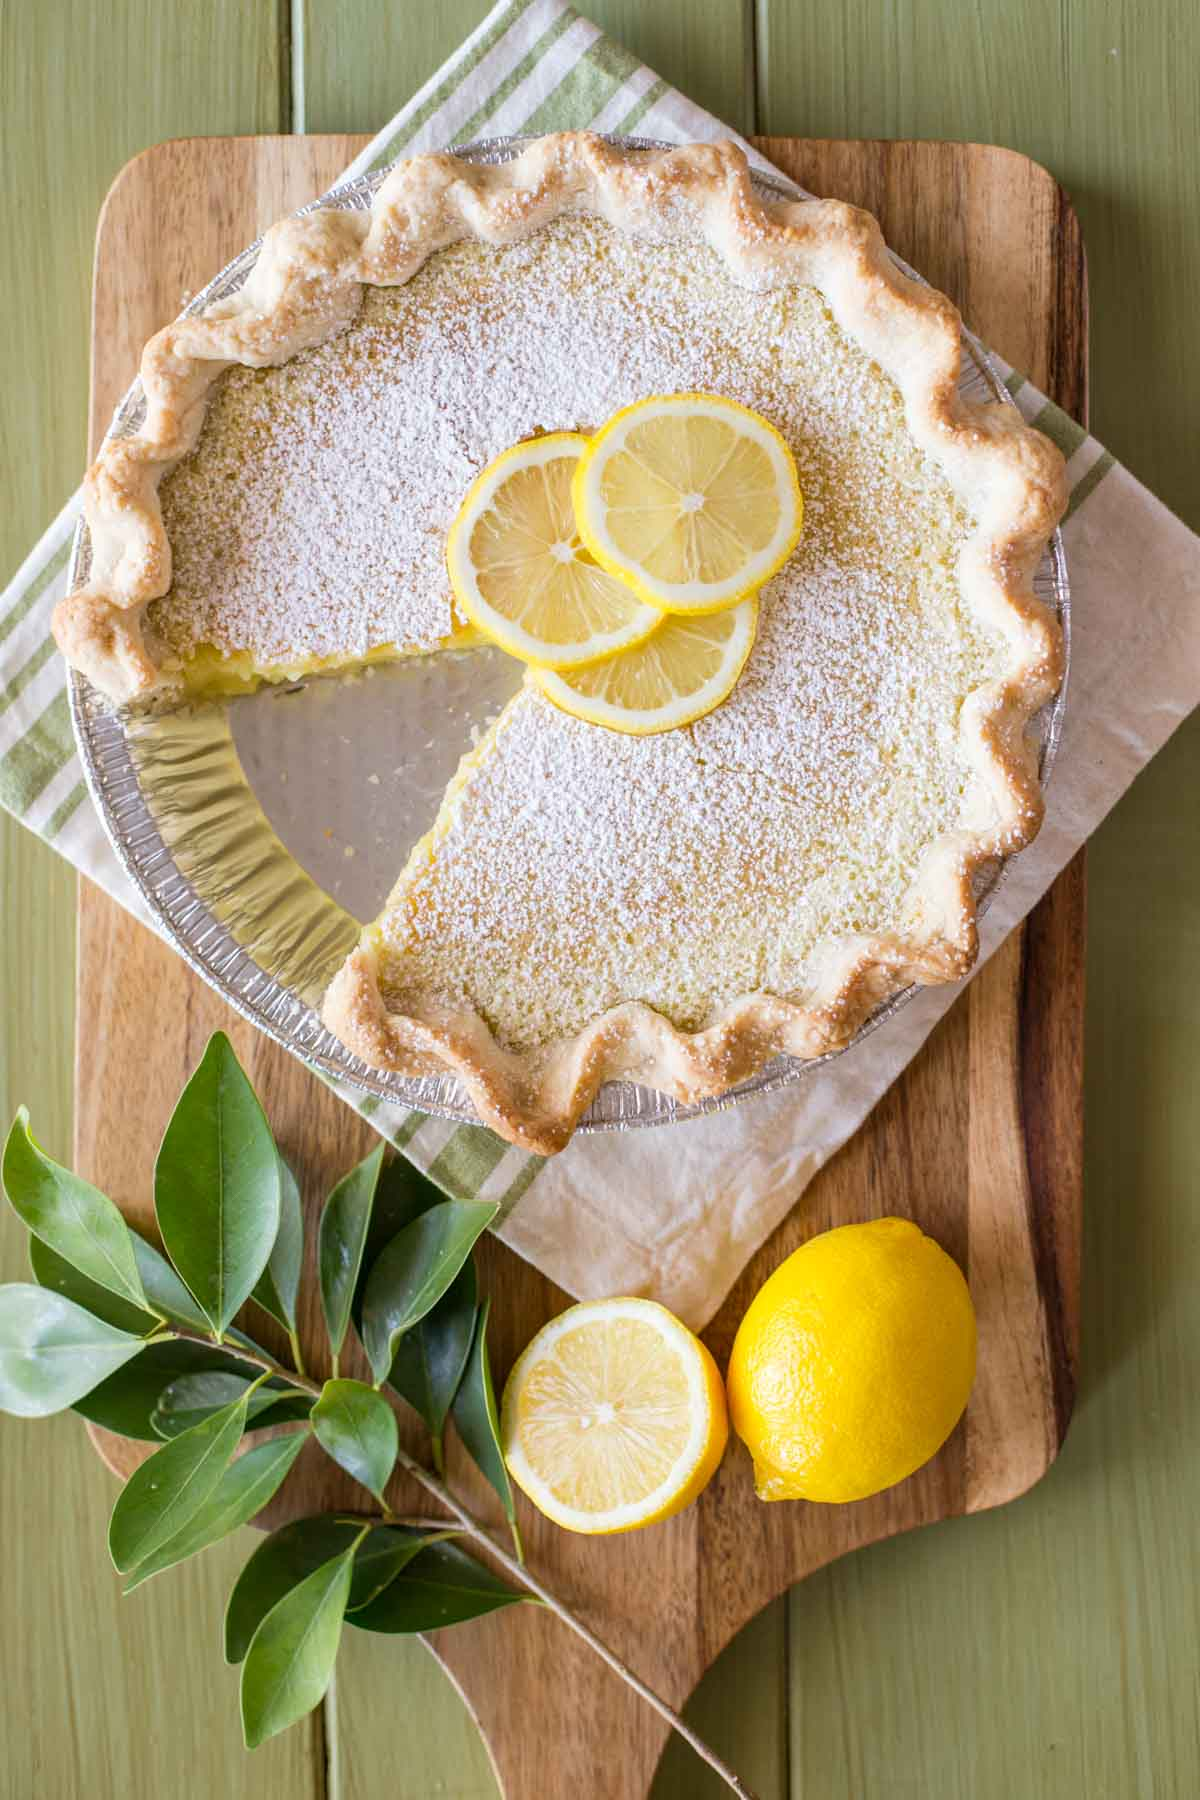 A Whole Lemon Pie dusted with powdered sugar and garnished with lemon slices, with one slice of pie missing, sitting on a cutting board with some lemons and tree leaves.